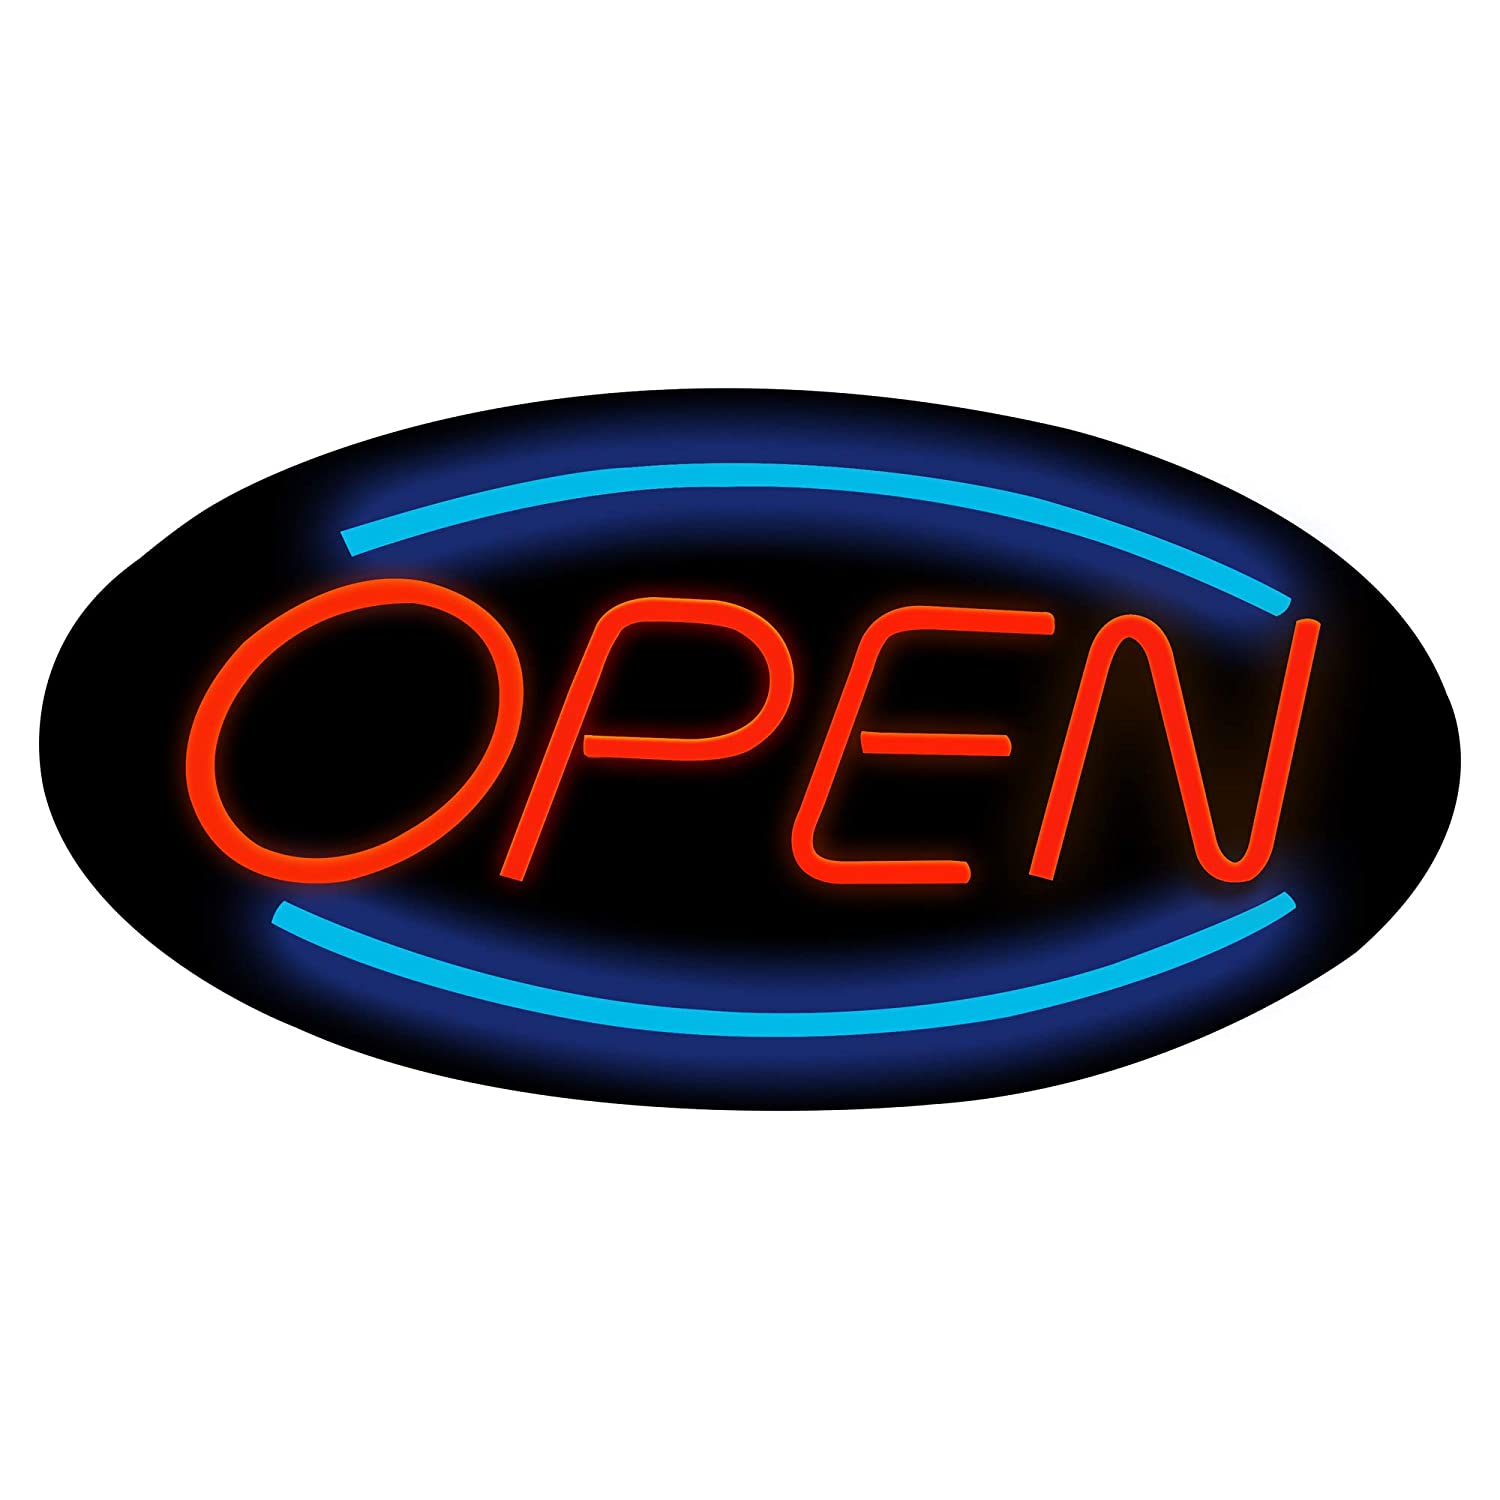 Royal Sovereign LED Business Open Sign Flashing Billboard Store Window Display Energy Efficient Bright Electronic Advertising Board RSB-1330E